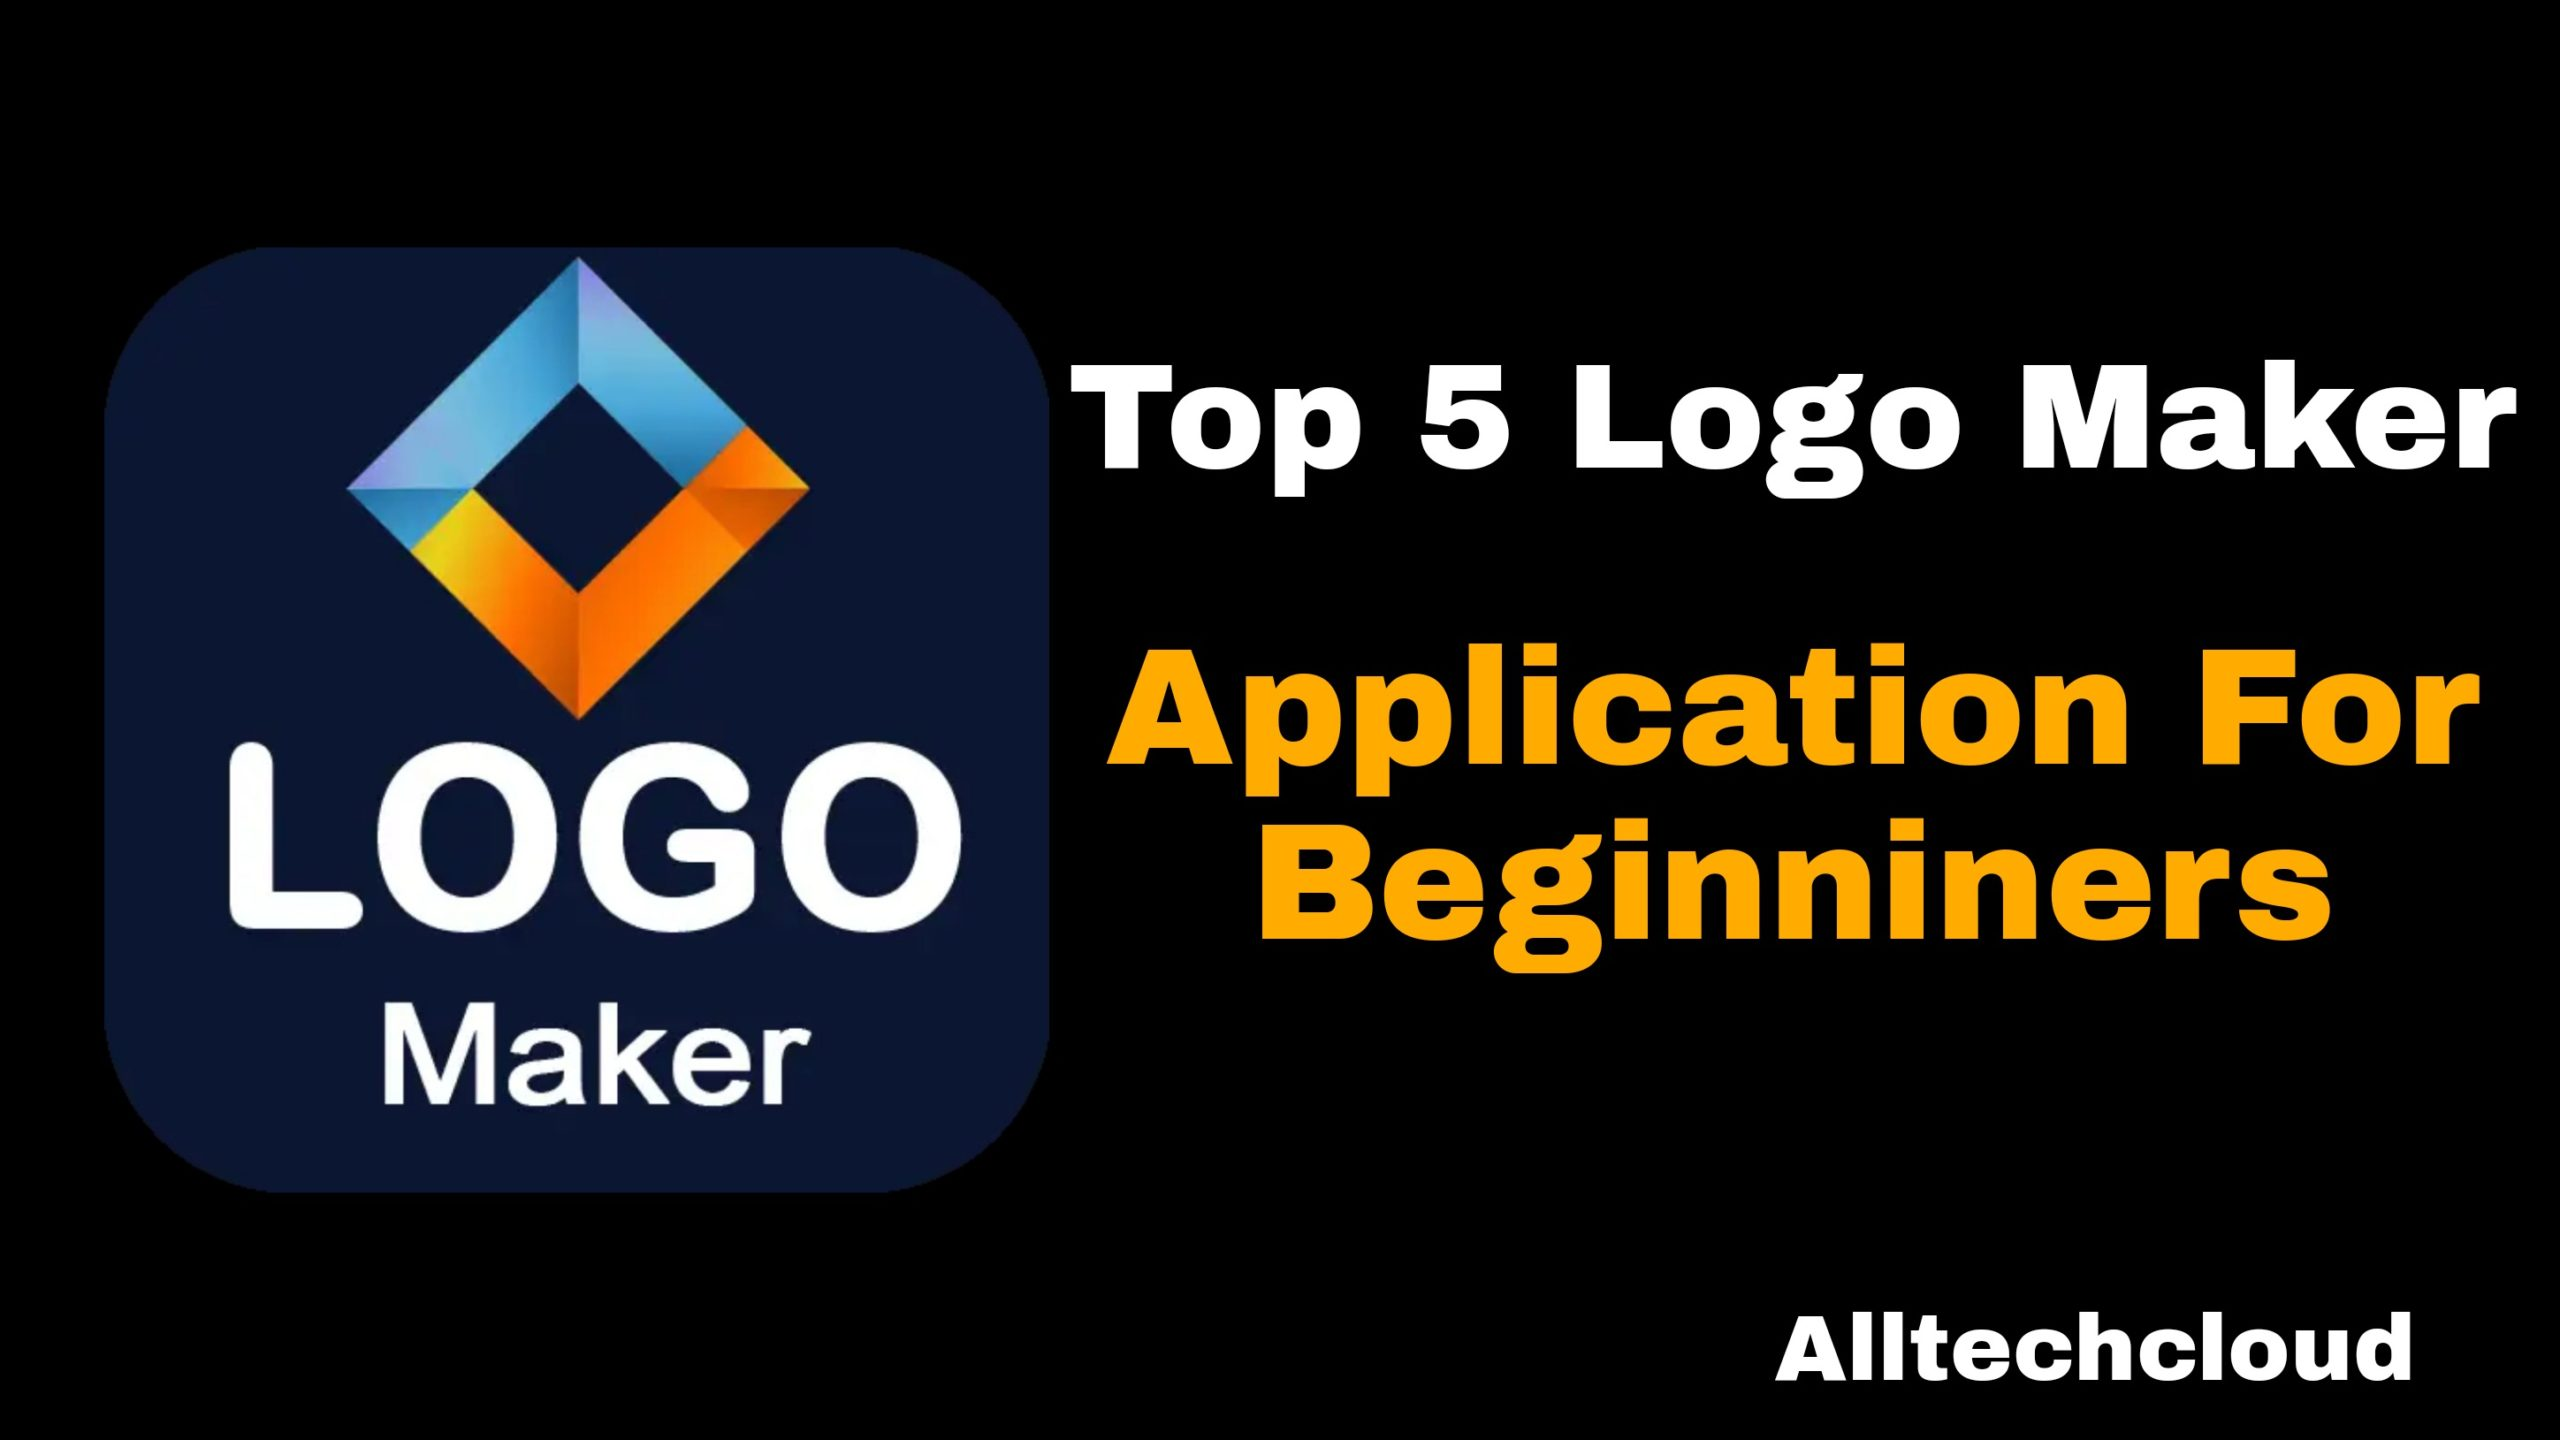 Top 5 Logo Maker Application for Beginners in 2021 (100% Working)